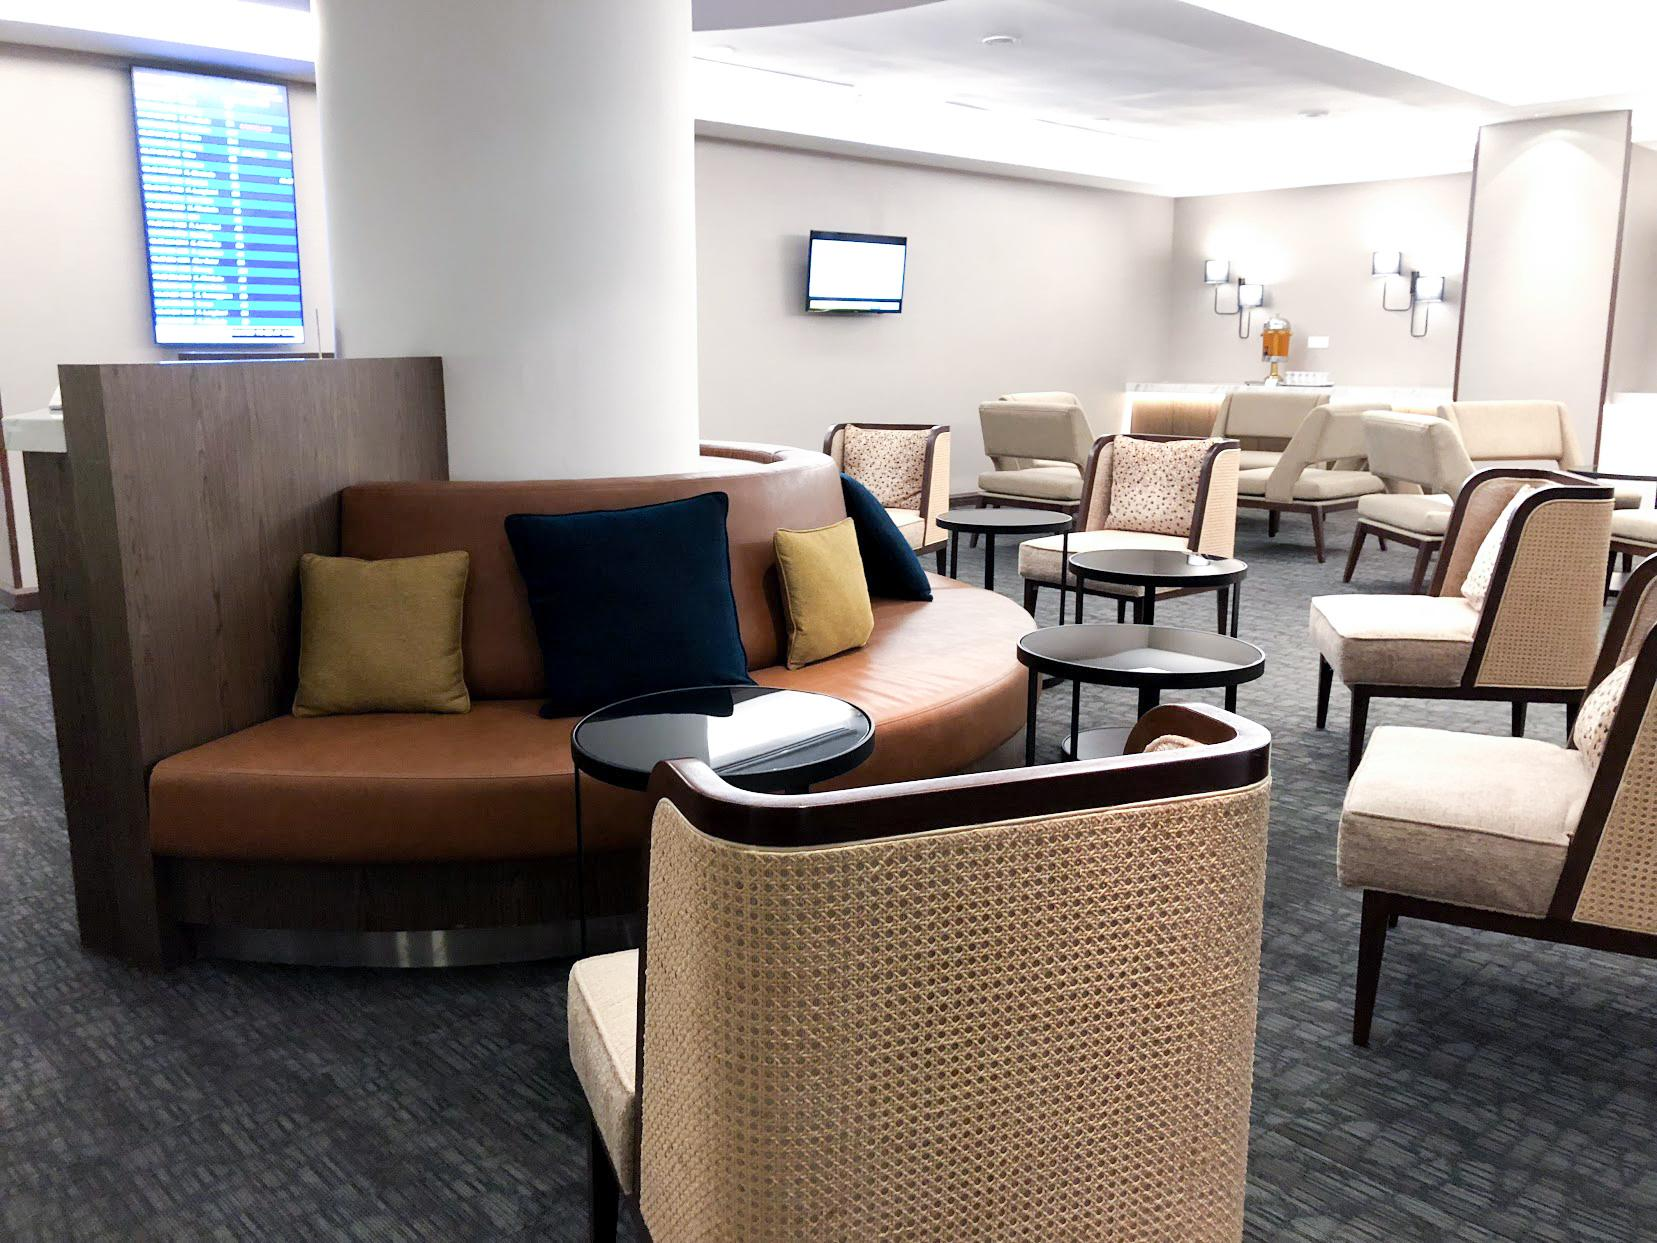 Malaysia Airlines Domestic Golden Lounge Kuala Lumpur seating area